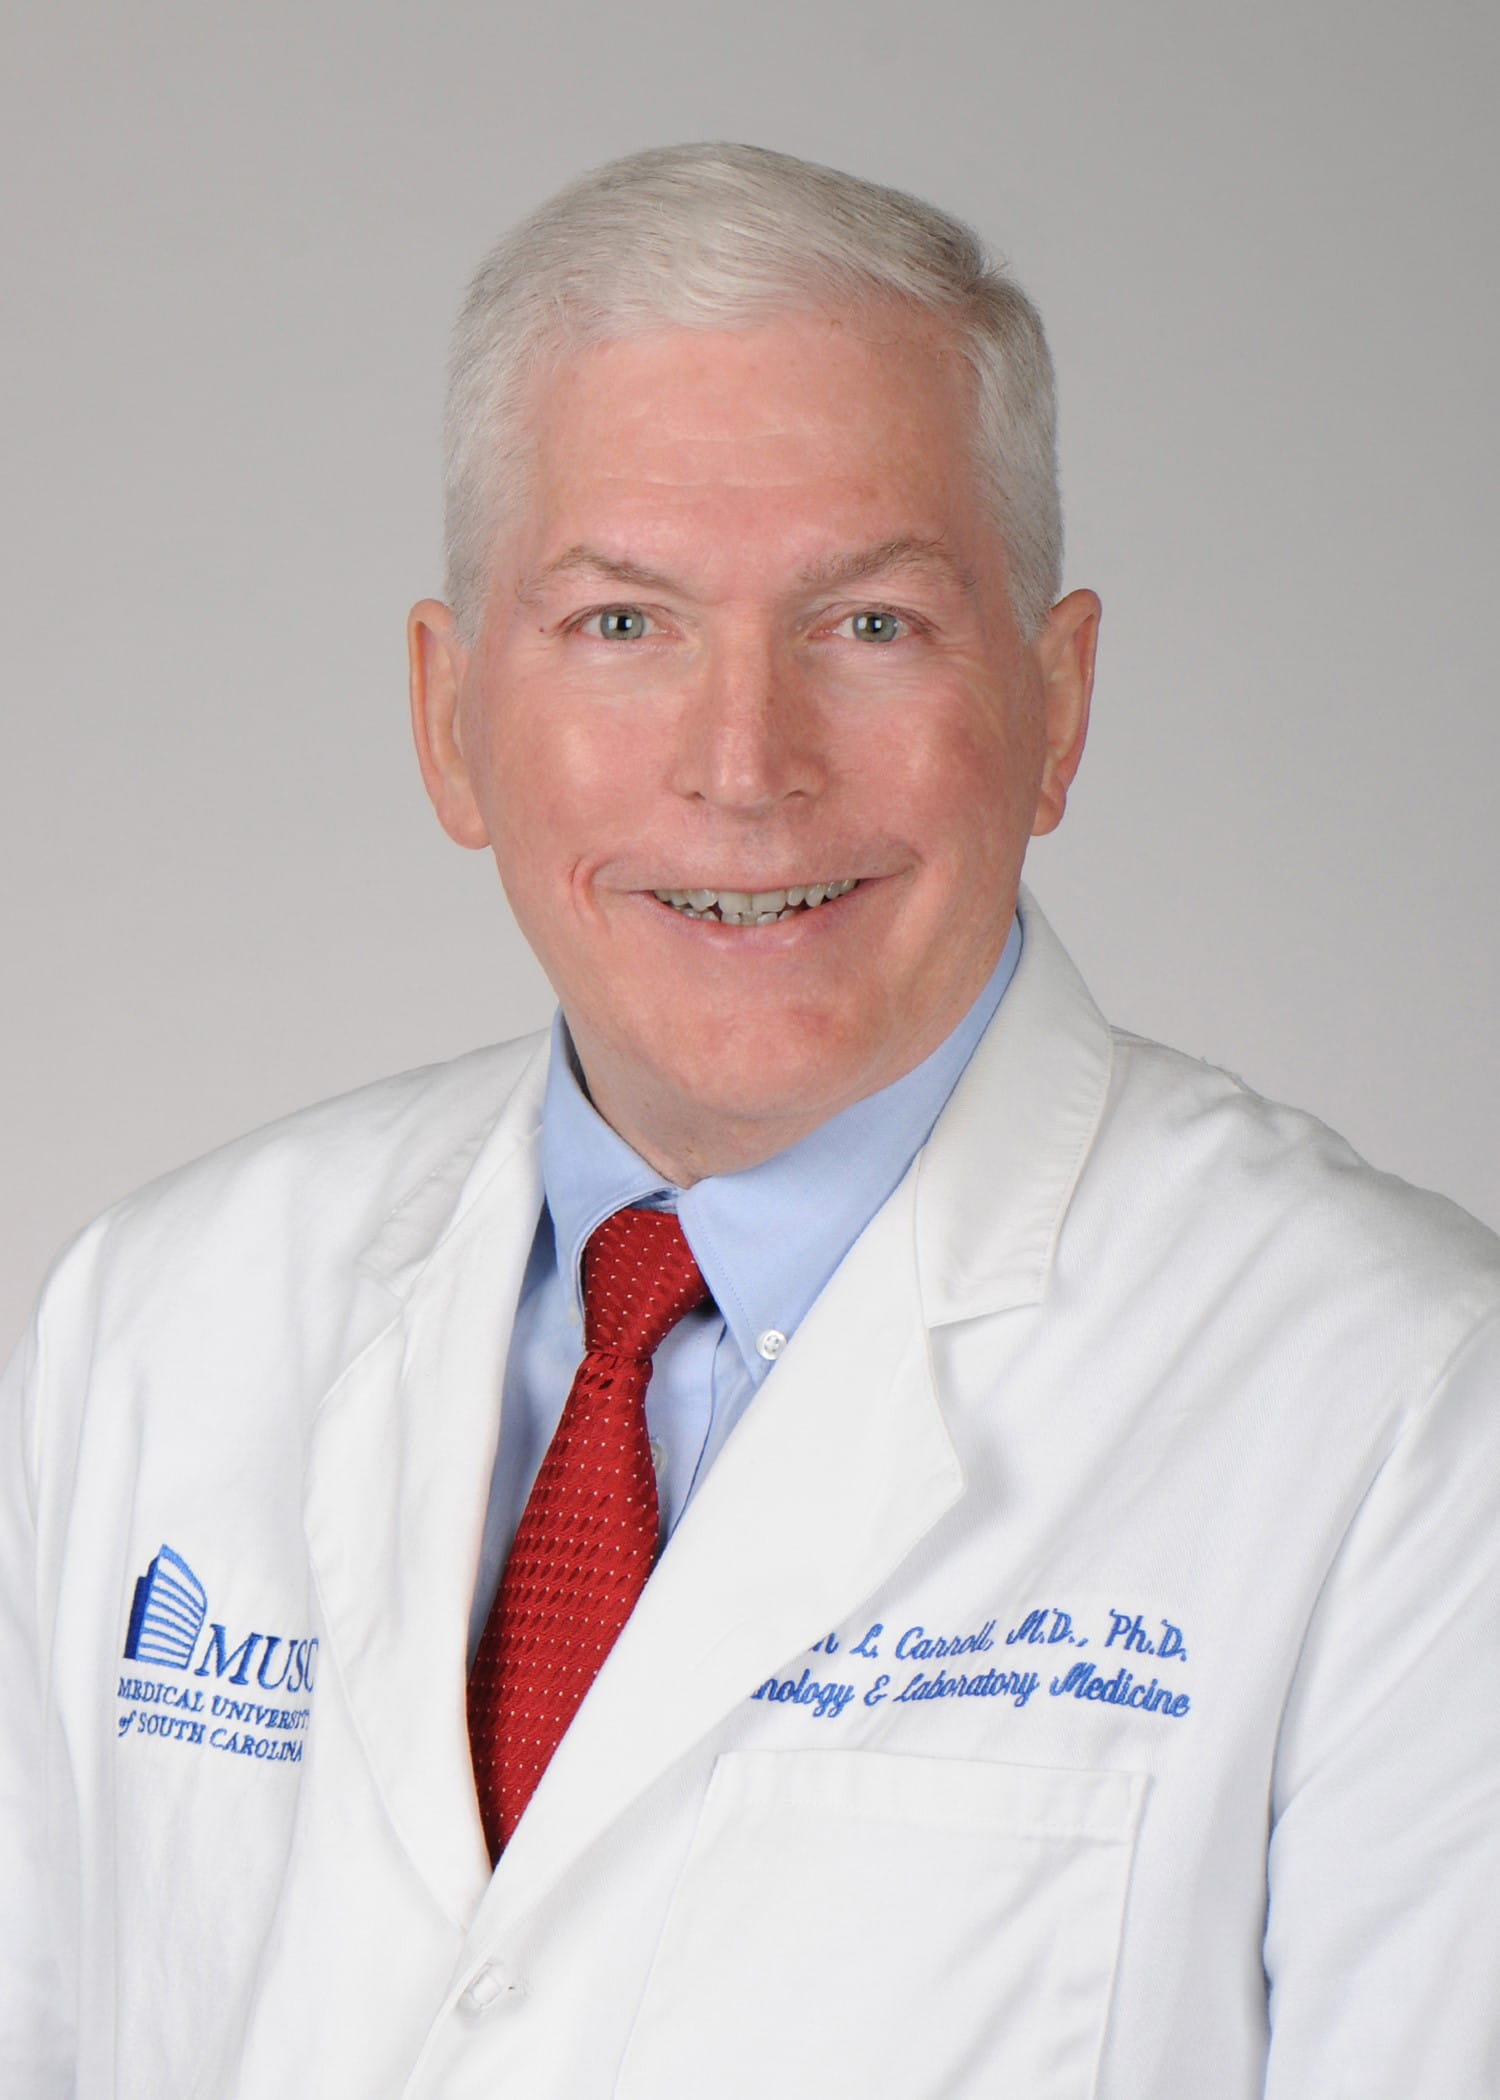 Photo of Dr. Carroll